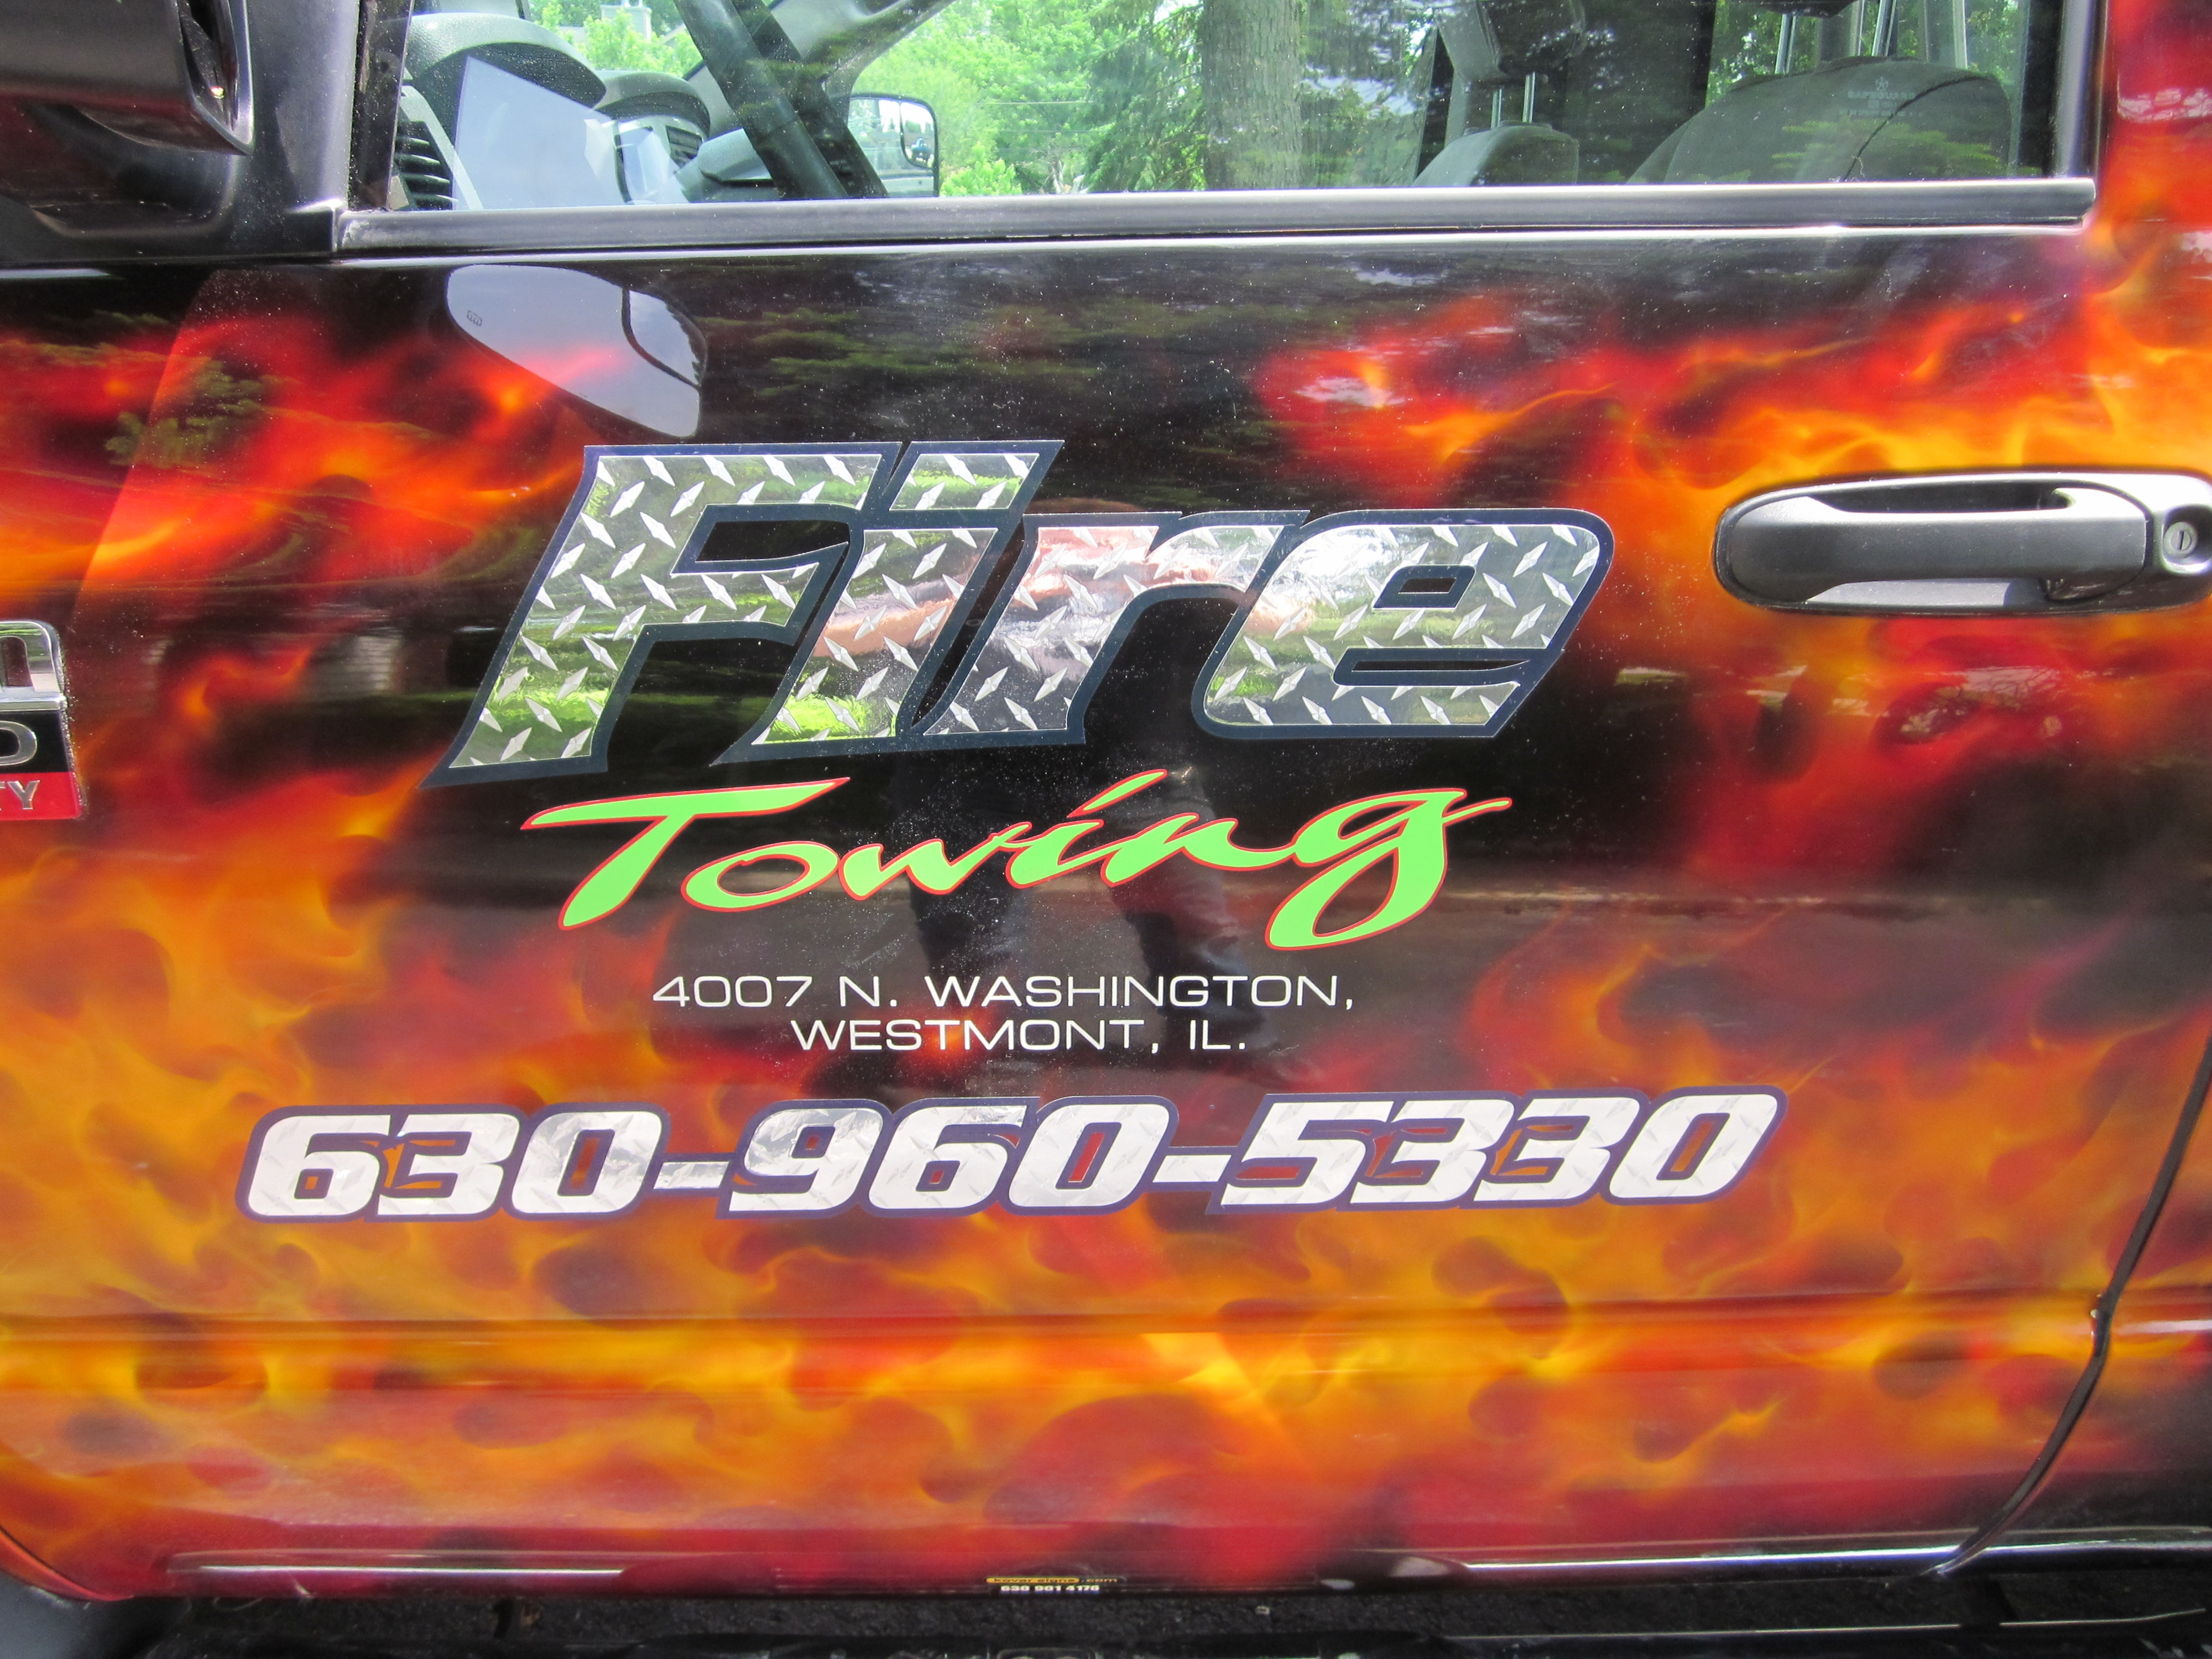 Hinsdale Airbrush designs